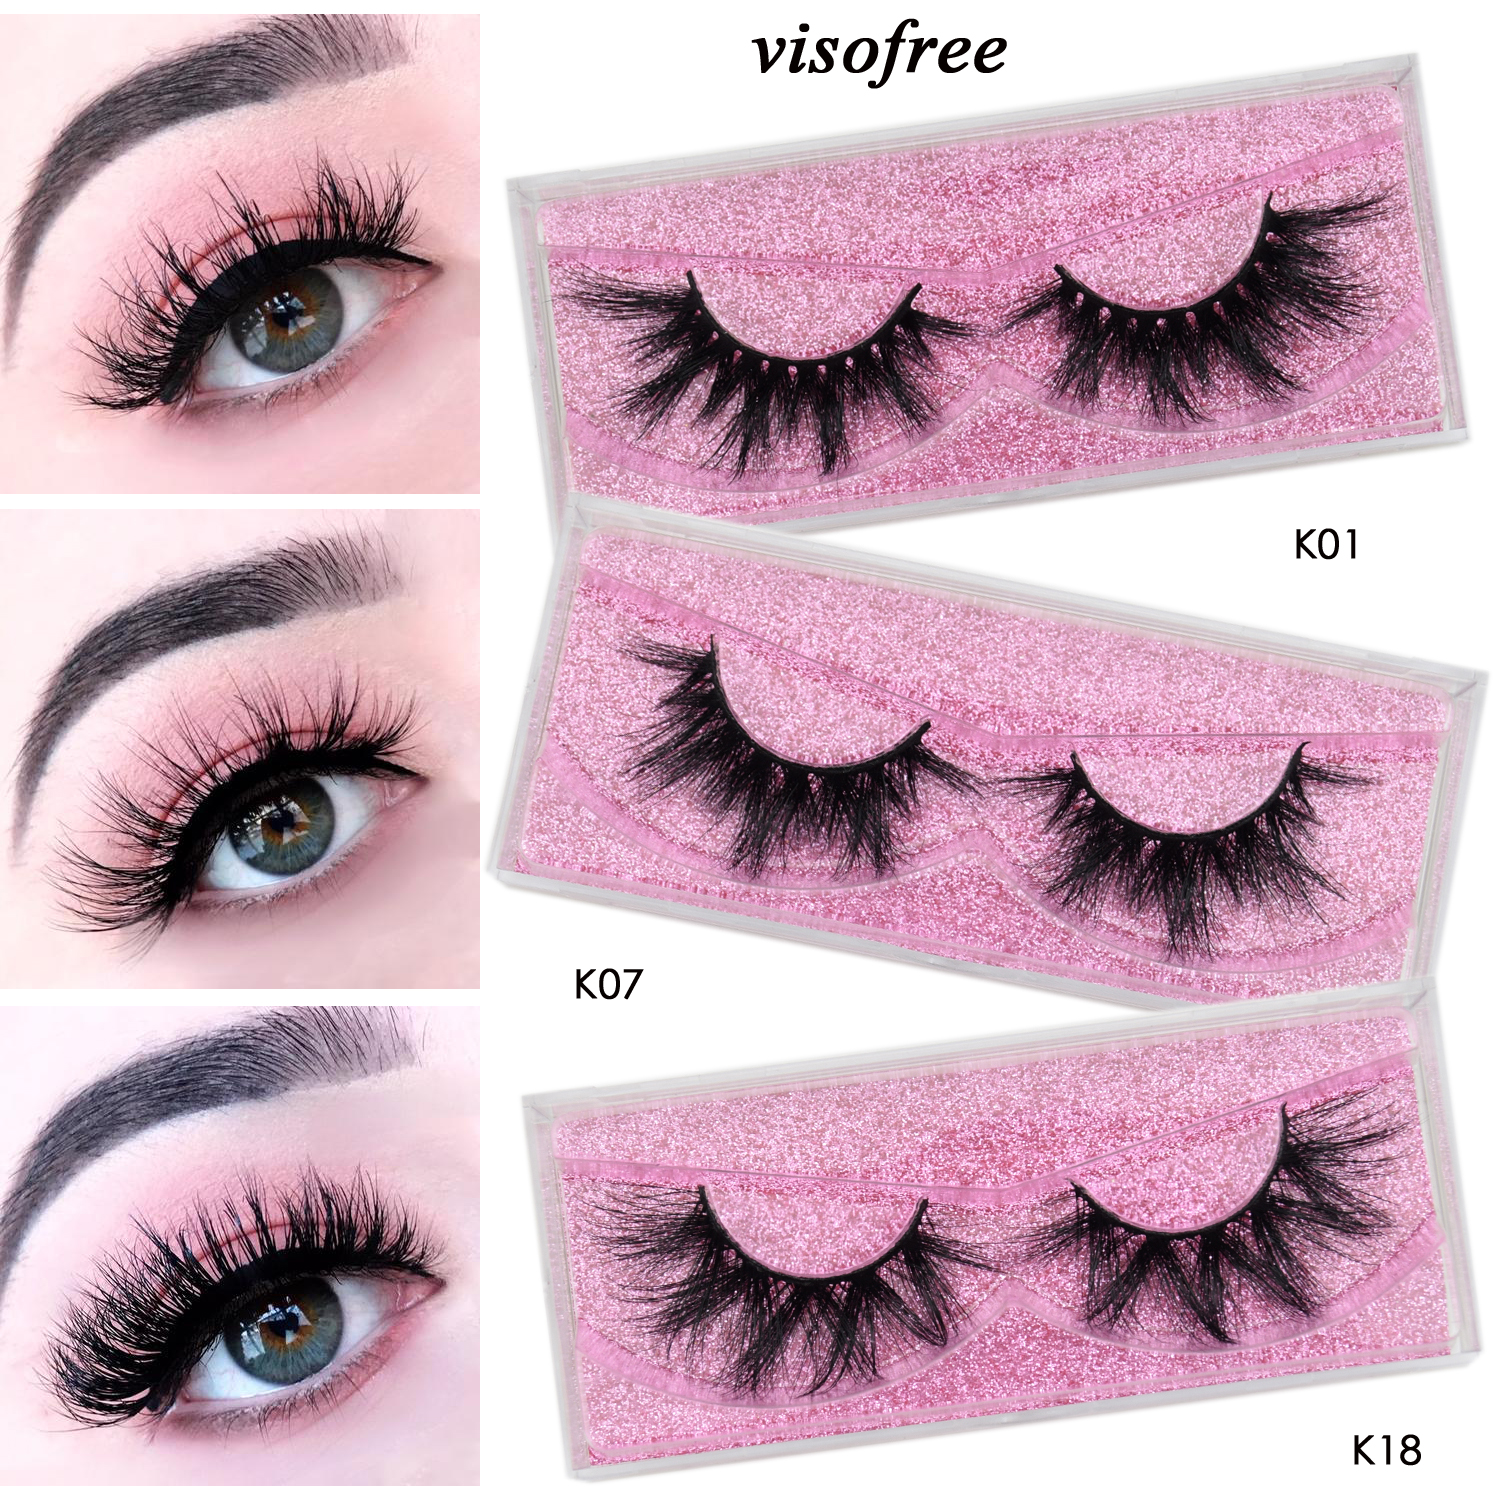 Visofree Eyelashes 3D Mink Lashes Faux Cils Dramatic Mink Eyelashes Makeup Lashes Full High Volume Mink Lashes Reusable Lashes